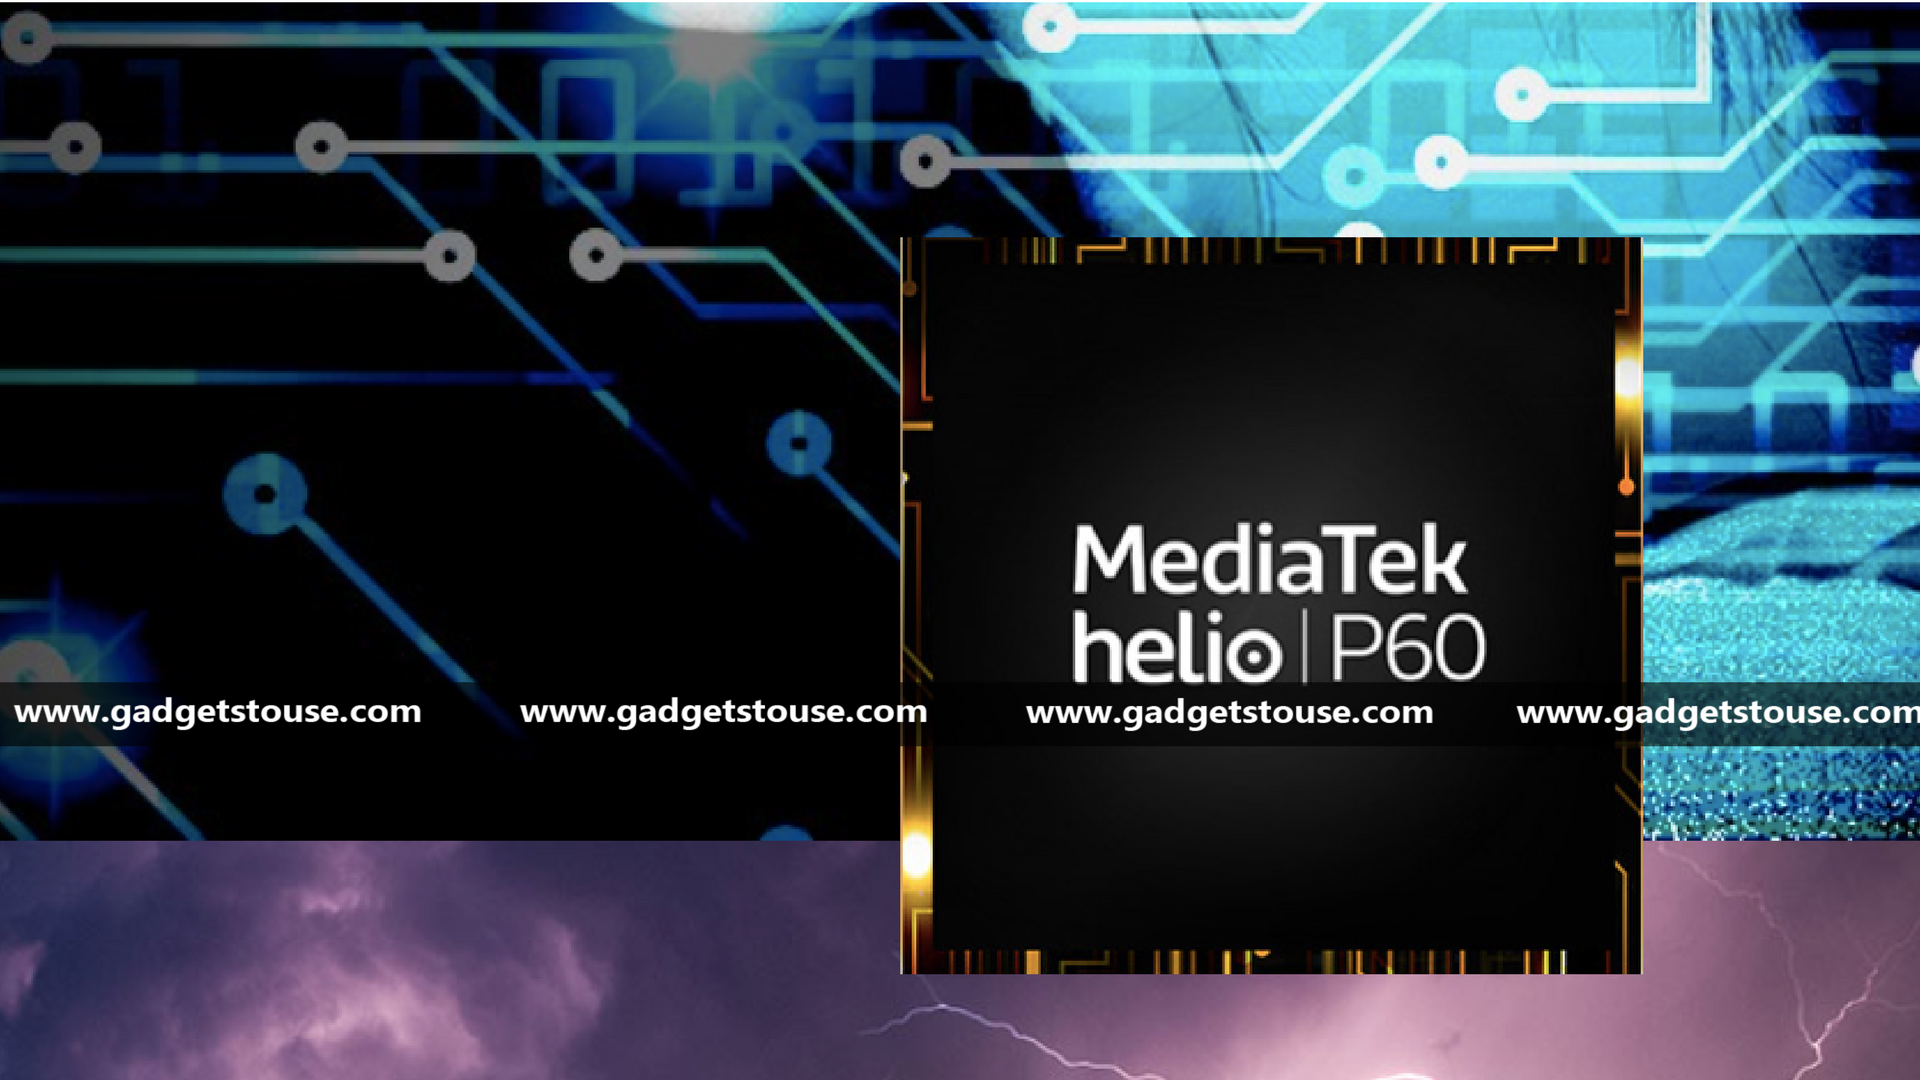 Dc5m United States It In English Created At 2018 02 27 0225 Greenhouse Radio Learn About Electrical Circuits Tedco Science Toys Chipset Maker Mediatek Has Also Made Good Use Of The Mwc2018 Platform To Unveil Their Latest Mid Range Ai Backed Processor Helio P60